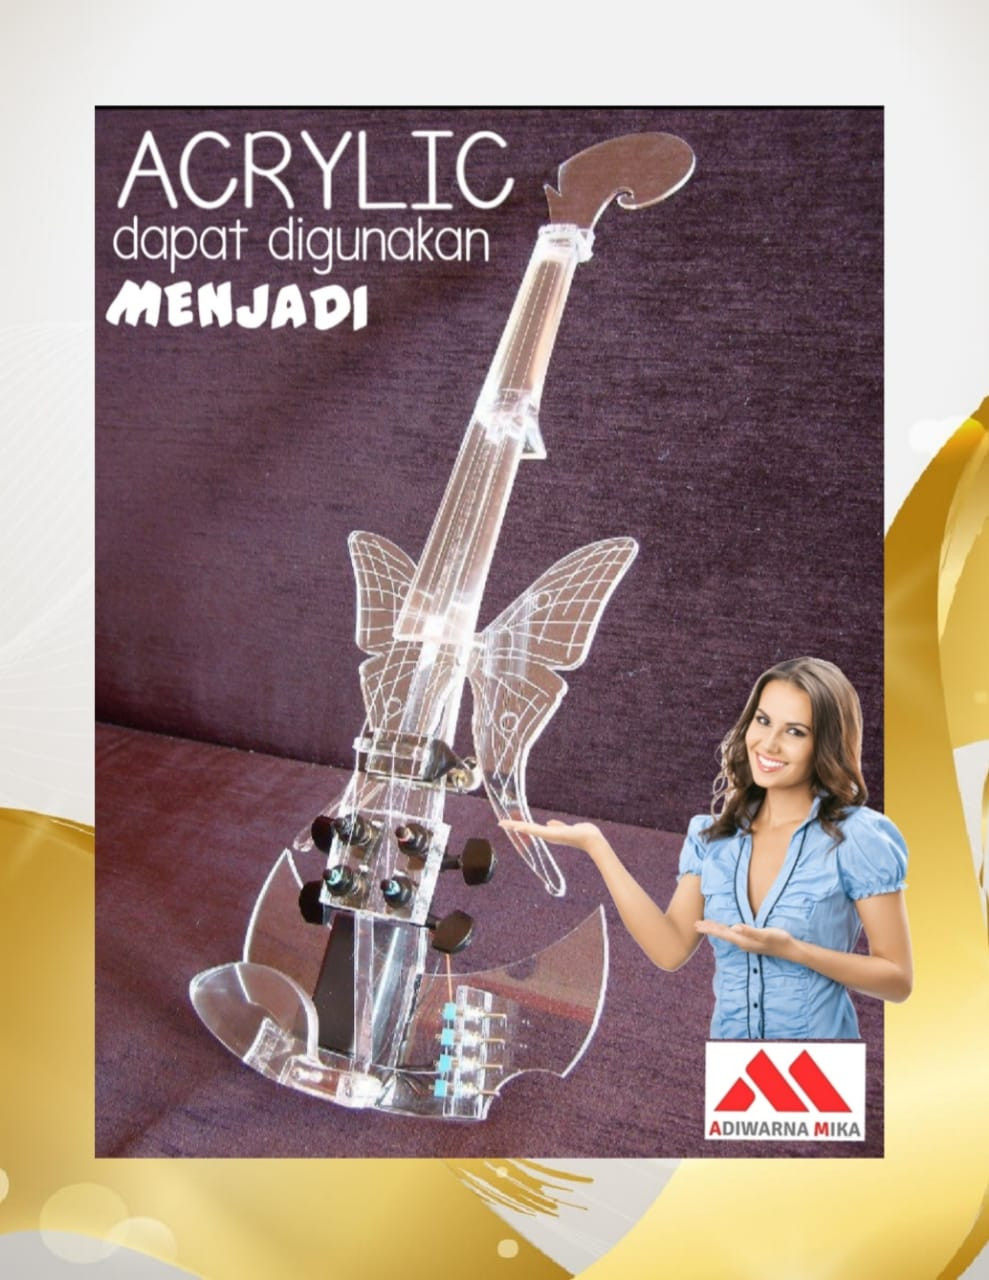 Acrylic Adiwarna Mika Can Be A Beautiful And Artistic Object